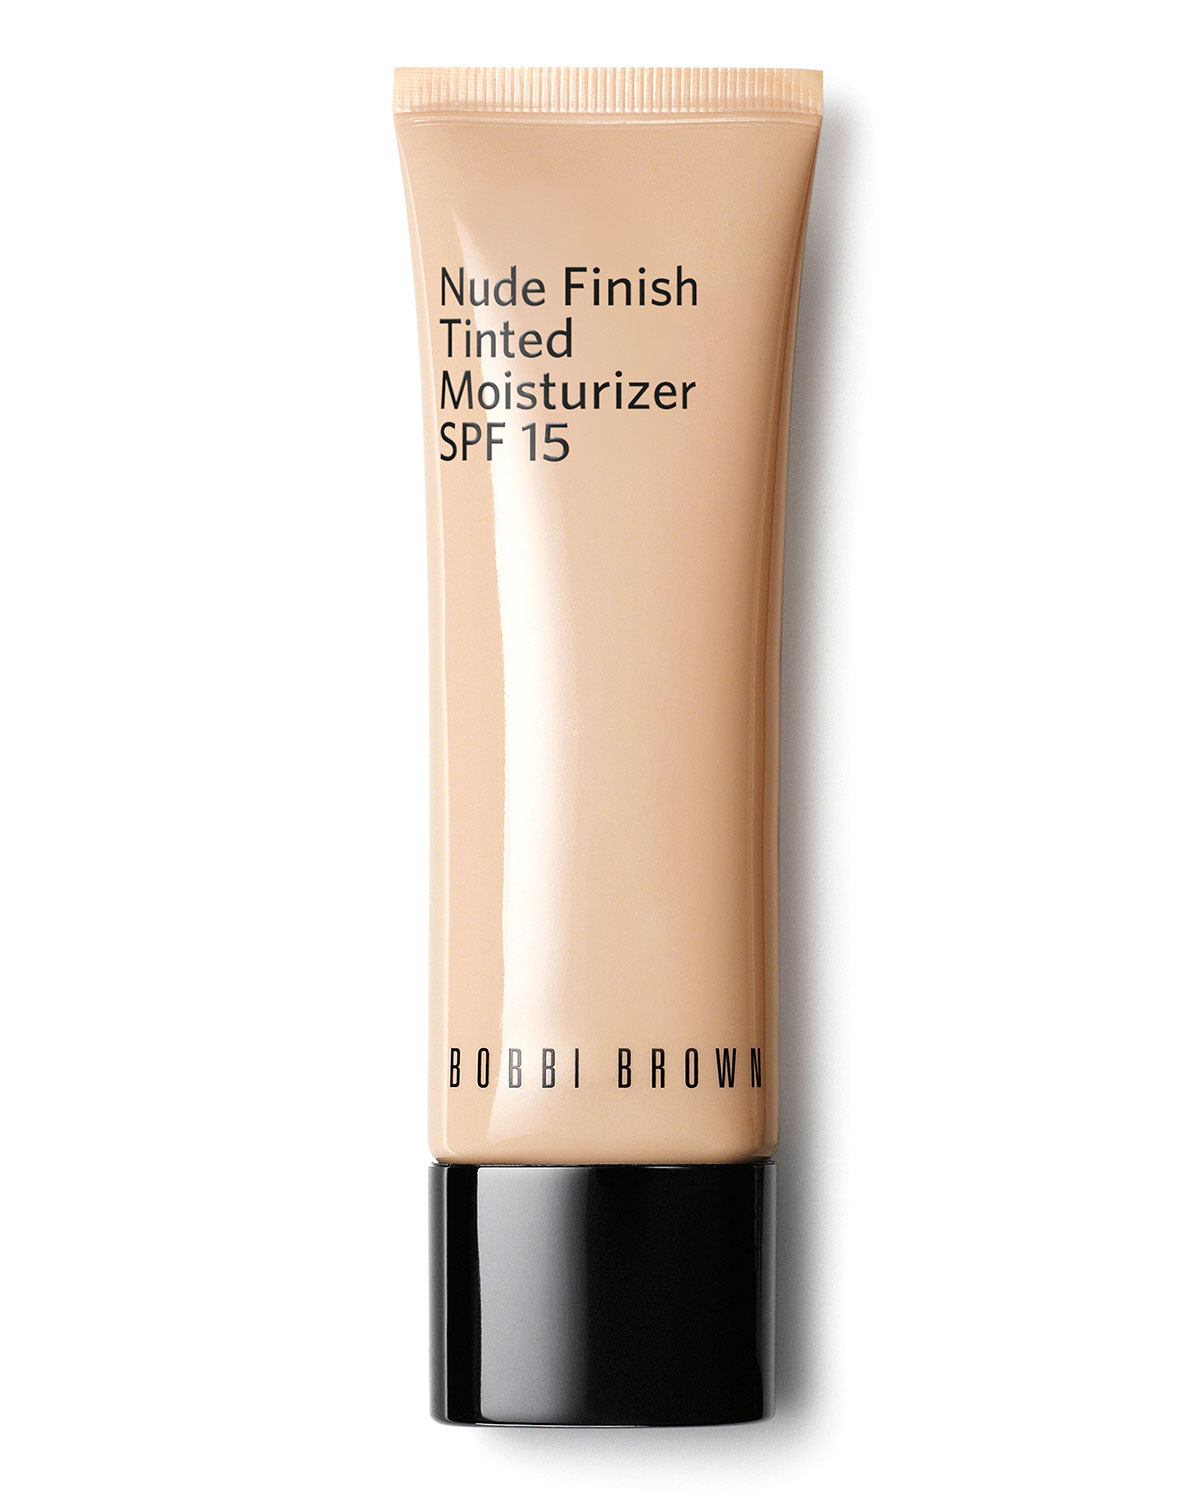 Nude Finish Tinted Moisturizer Spf 15 - Light To Medium Tint, Light Tint